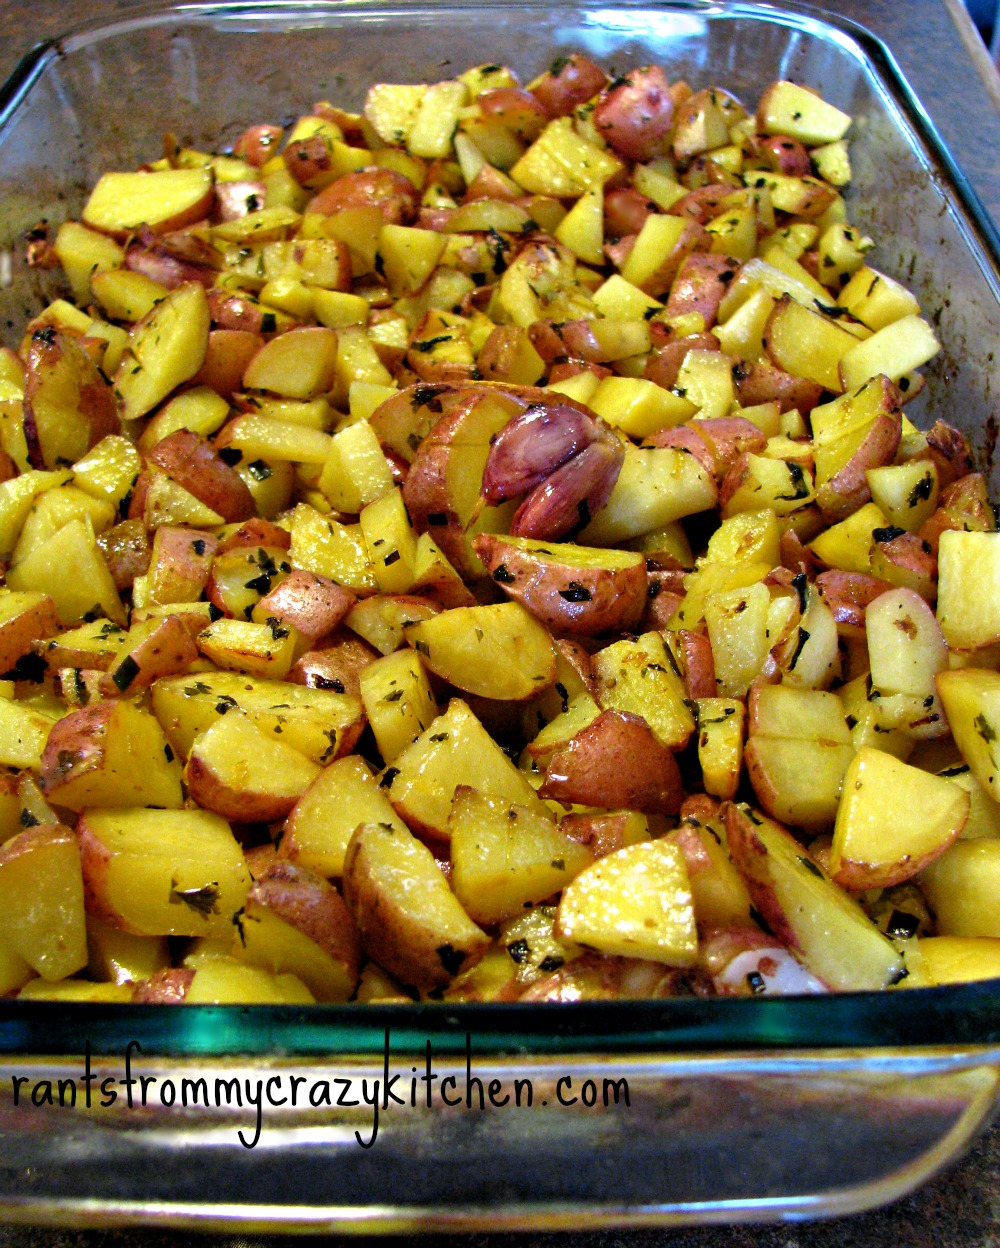 ... of Salt: Lemon Herb Roasted Potatoes - Rants From My Crazy Kitchen